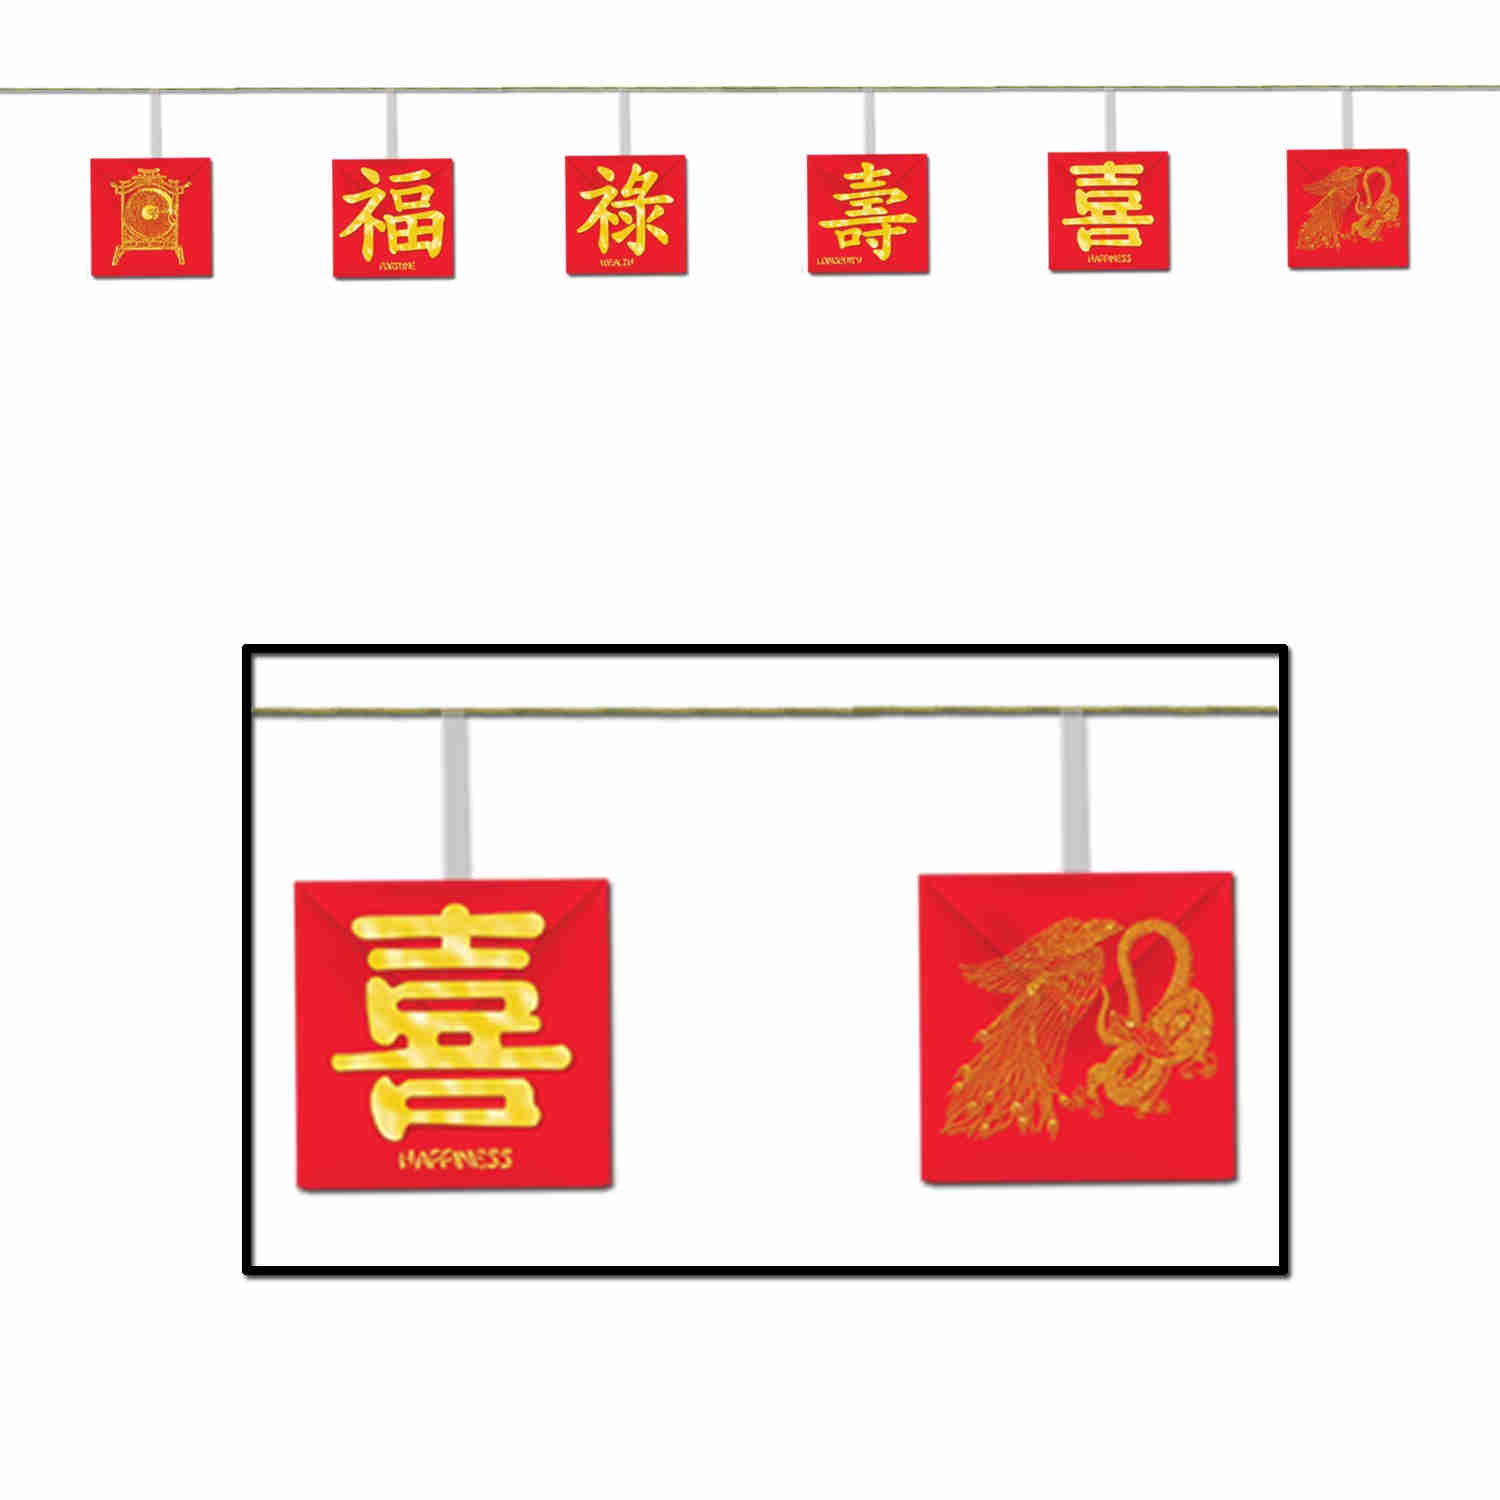 Chinese garland with red squares hanging off of the banner with Chinese characters written on the red squares